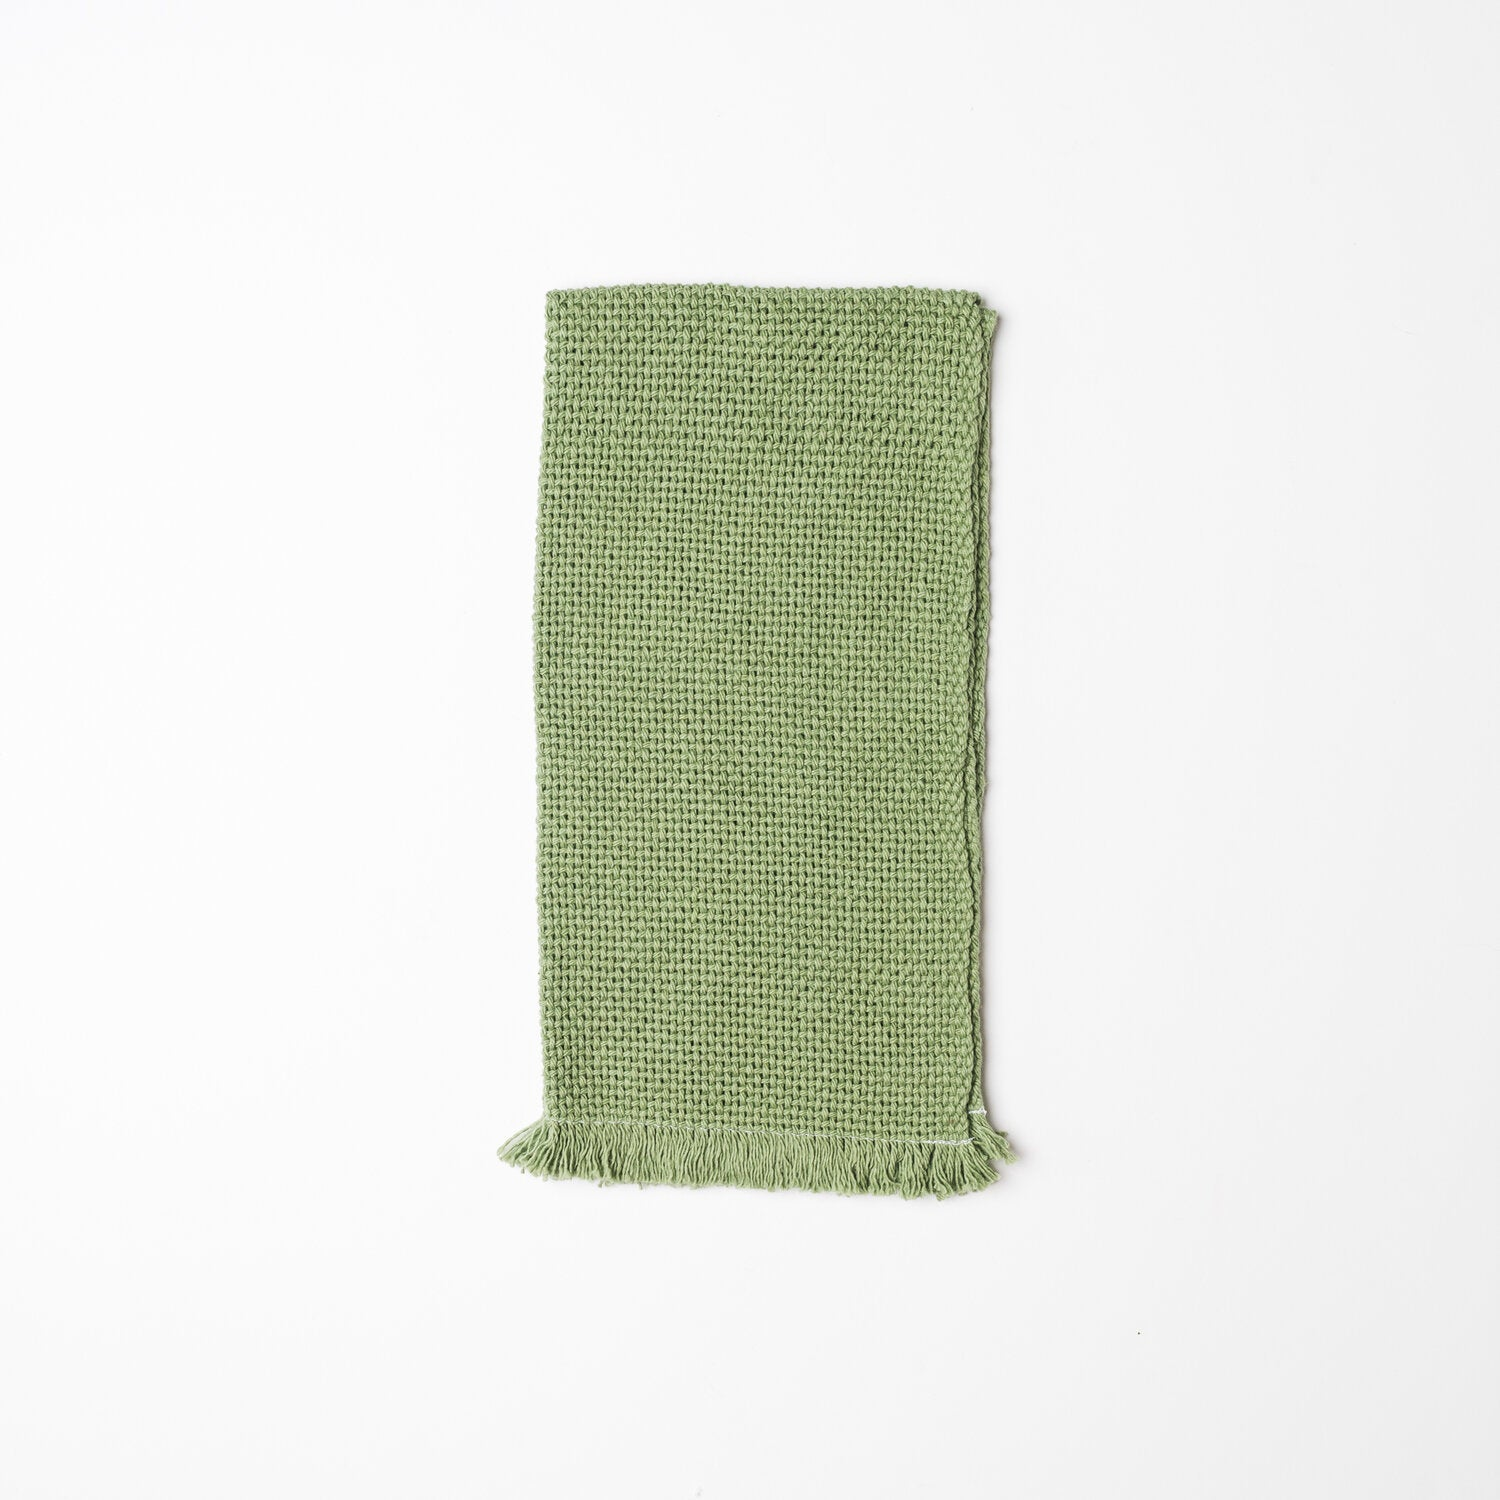 KD Weave Green Hand Towel, Set of 2